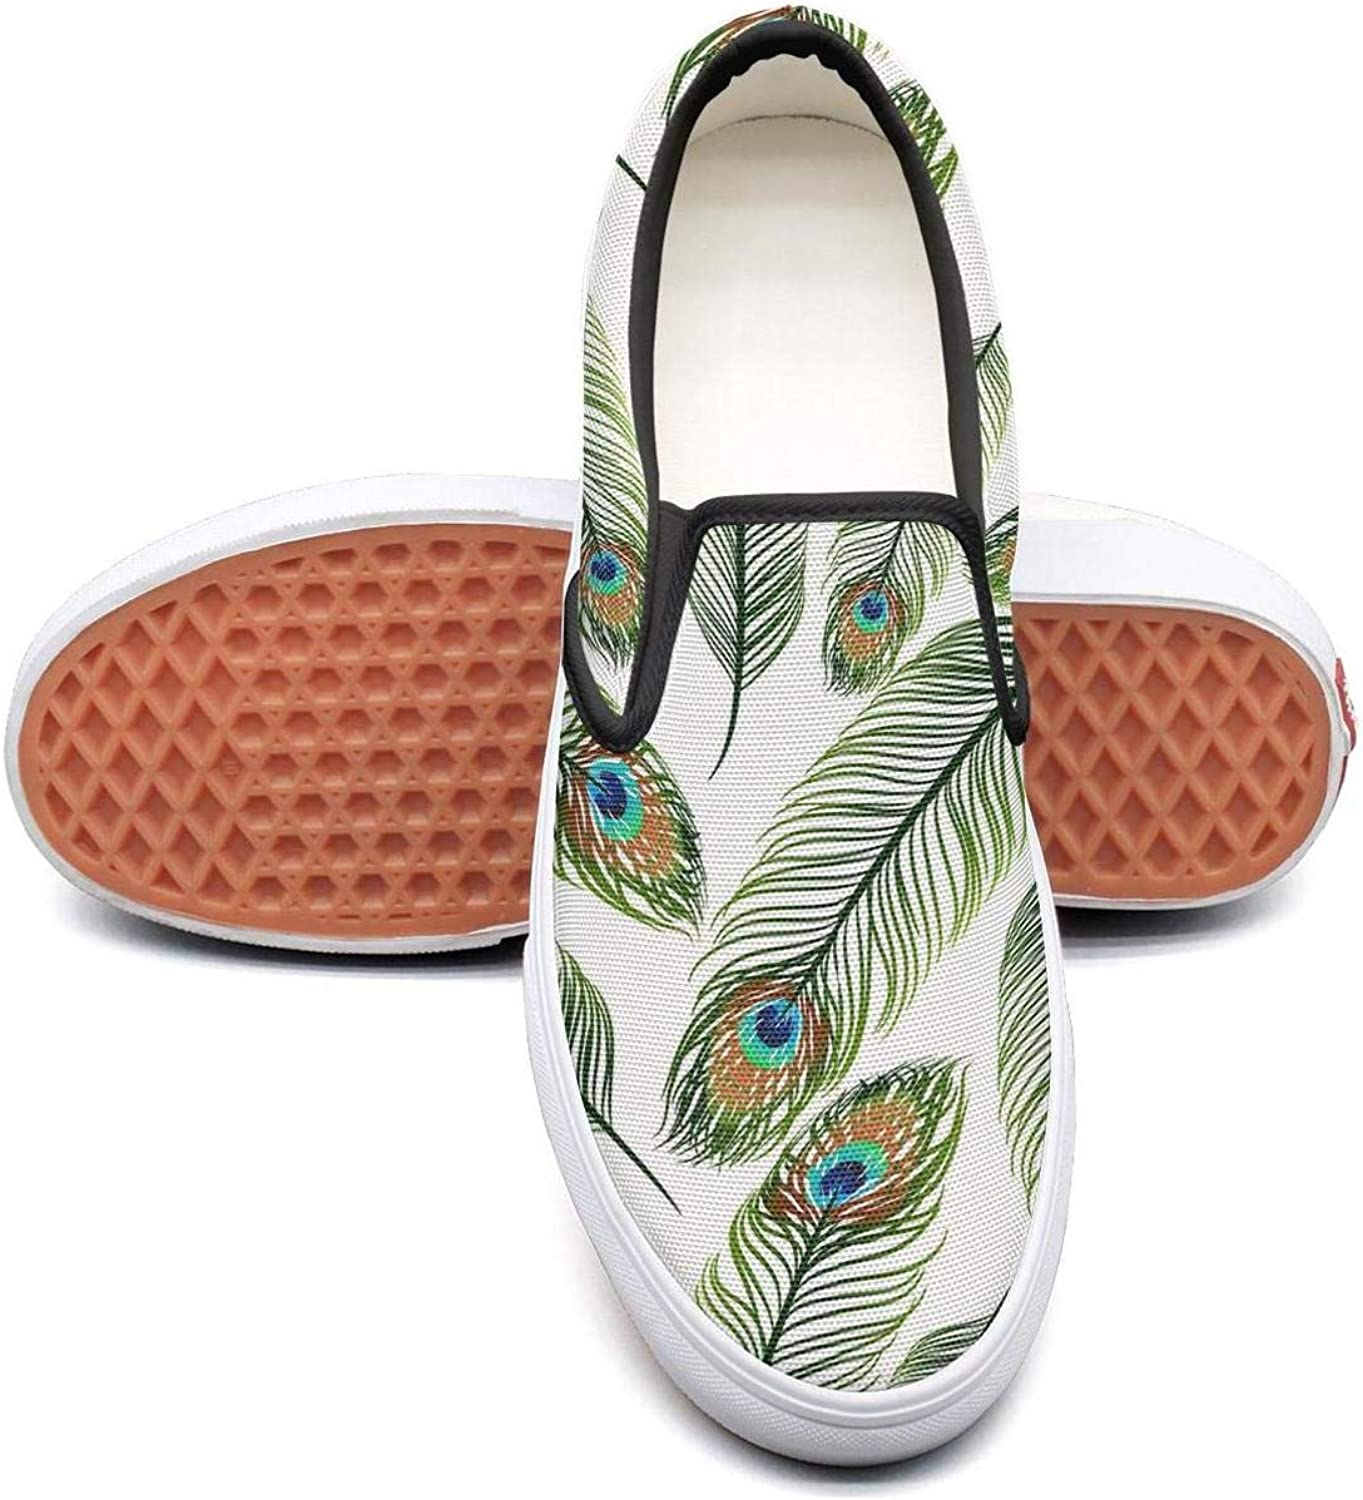 Texture with Peacock Feathers Slip On Canvas Upper Sneakers Canvas shoes for Women Casual